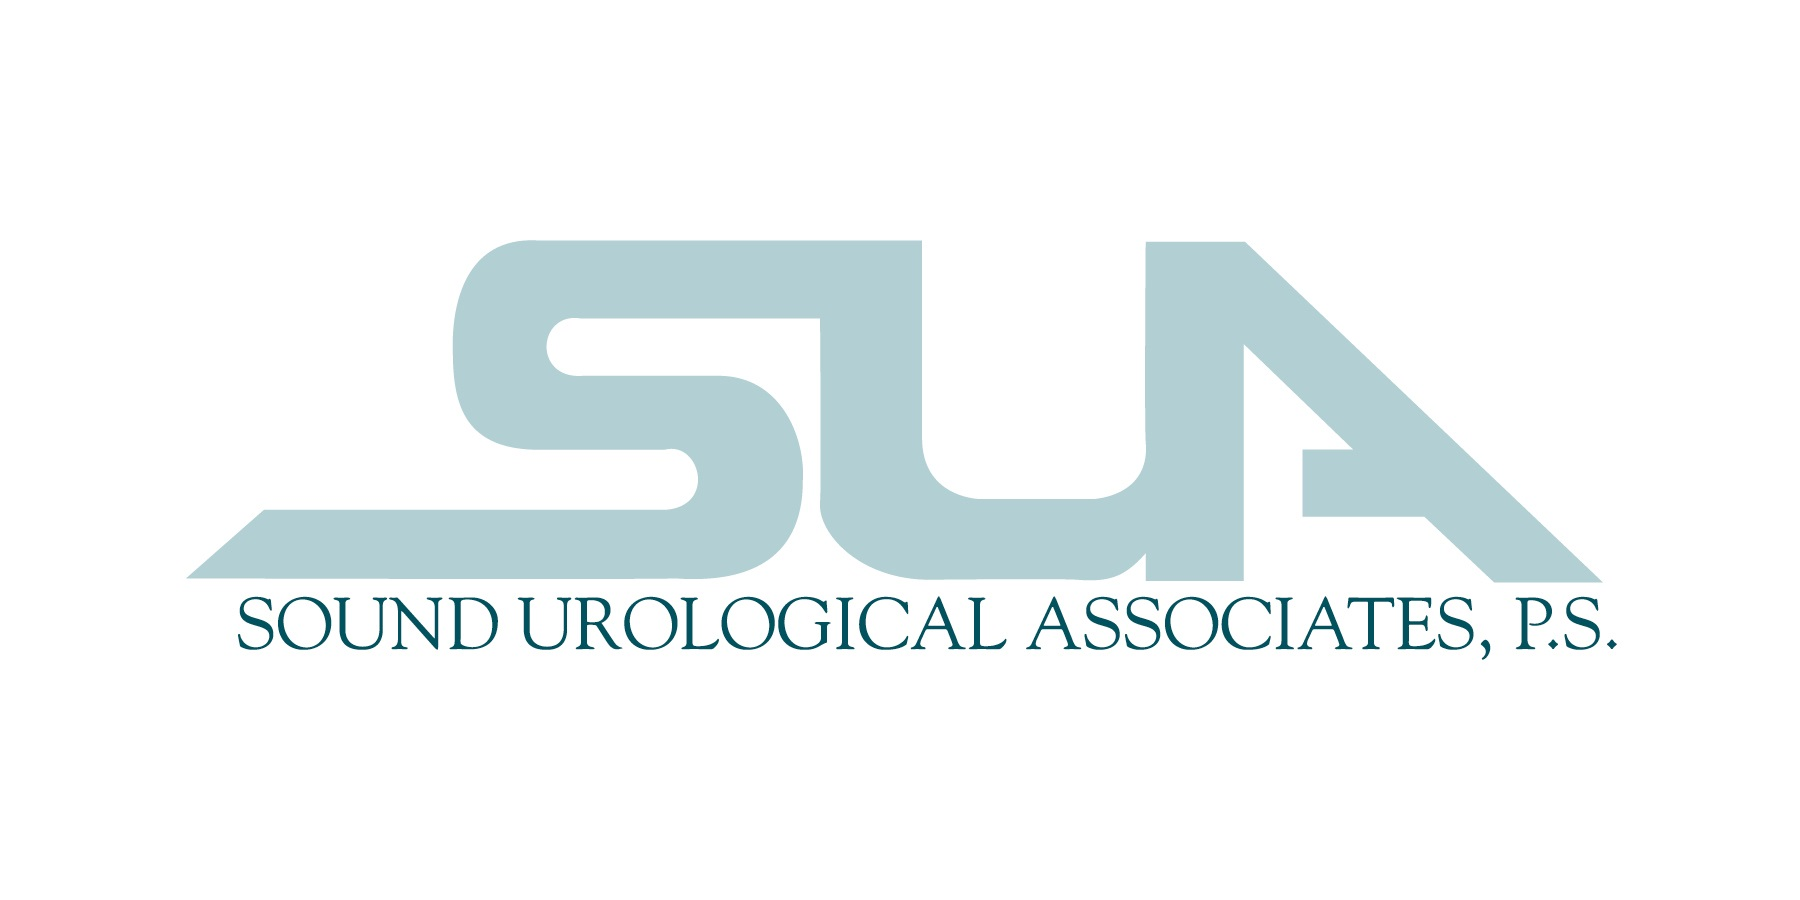 Sound Urologica's Logo